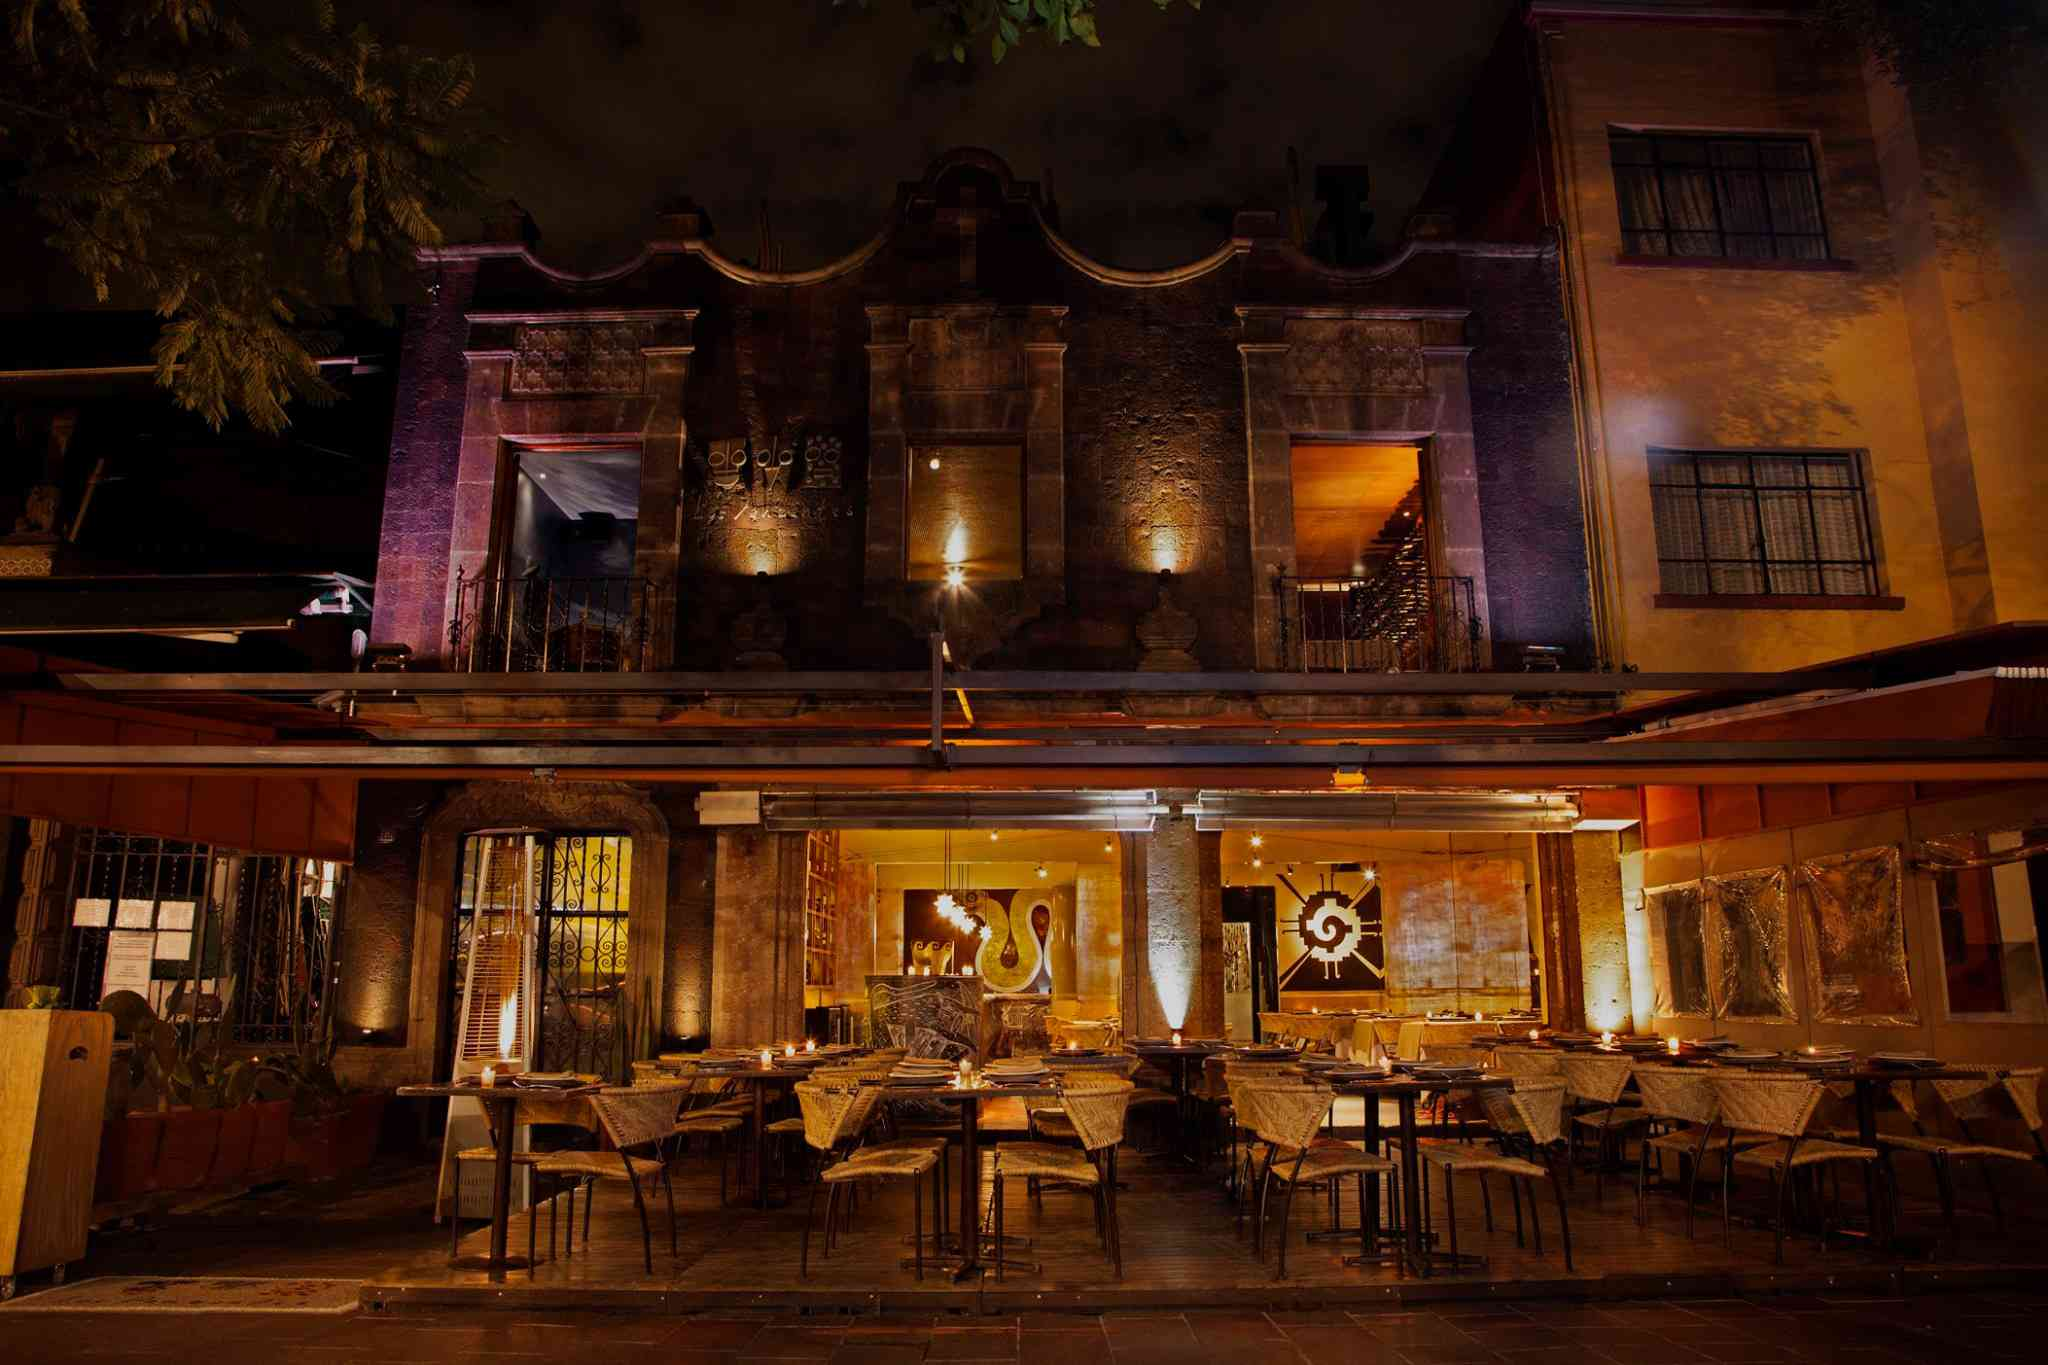 Dimly lit outdoor seating at Los Danzantes Restaurant in Coyoacán